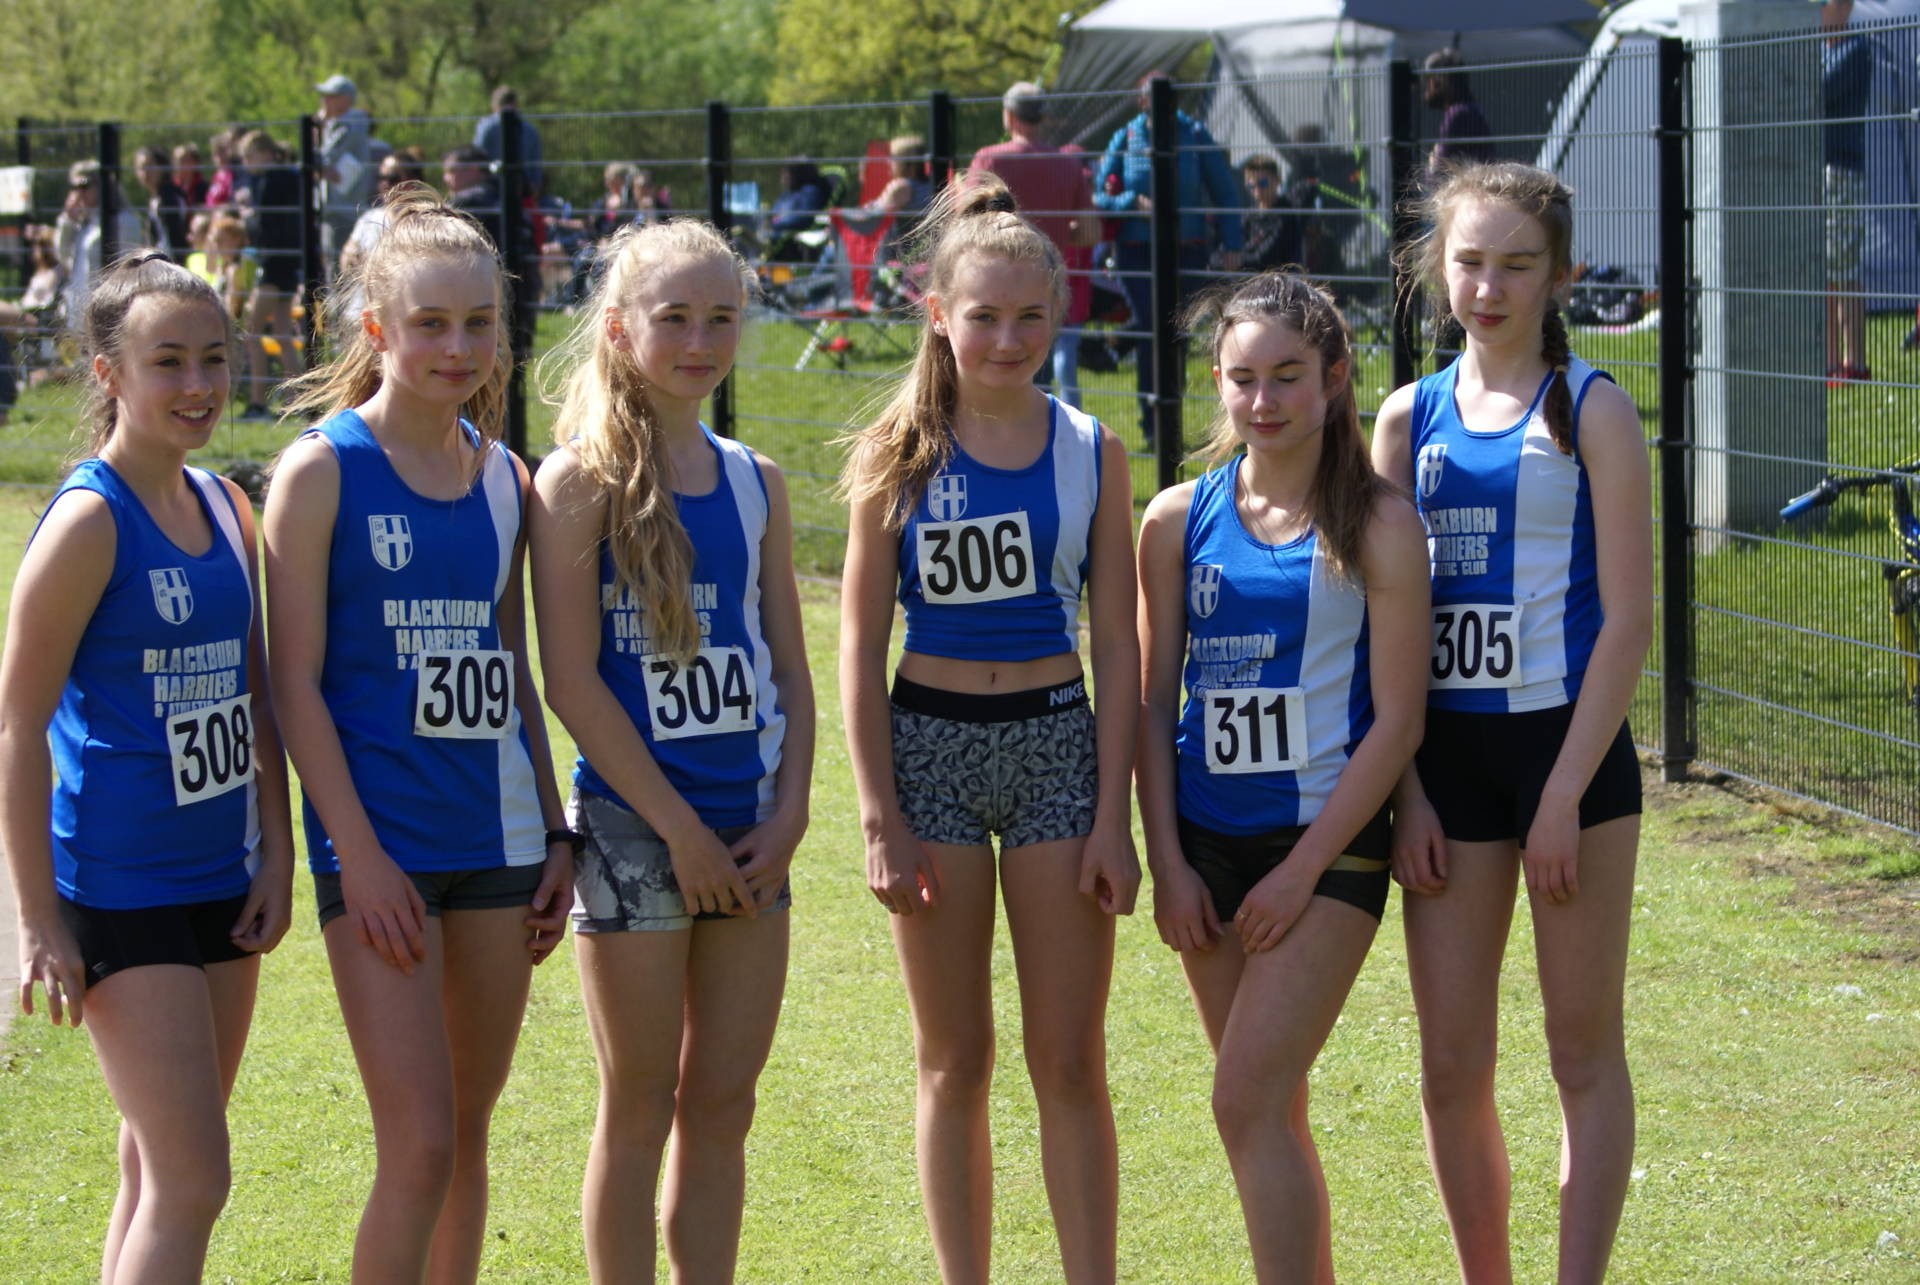 New PB's, English Schools qualification Standards gained & Medals for the Harriers at Lancashire T& F Championships